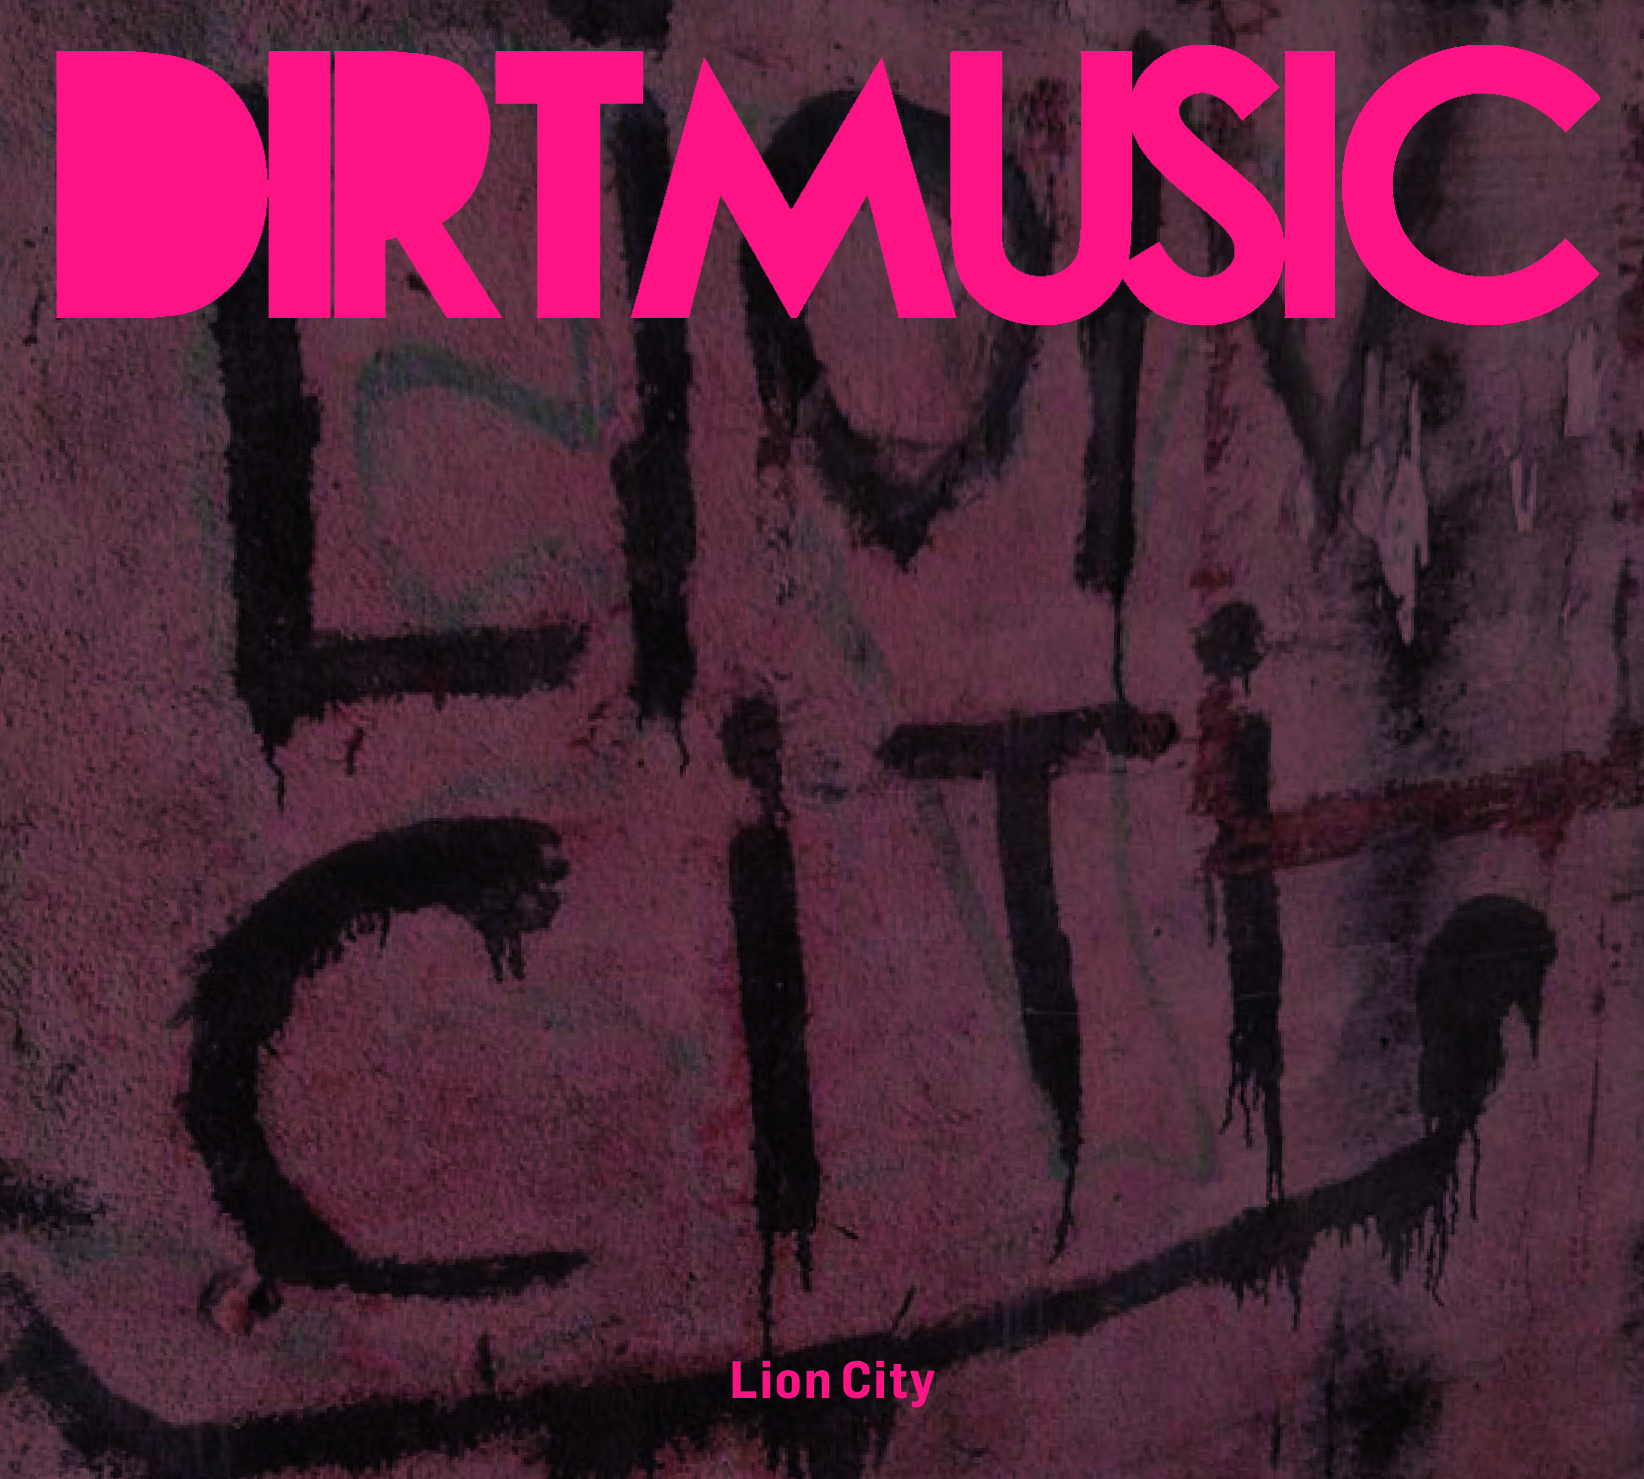 DIRTMUSIC - LION CITY - OUT NOW ON GLITTERBEAT RECORDS